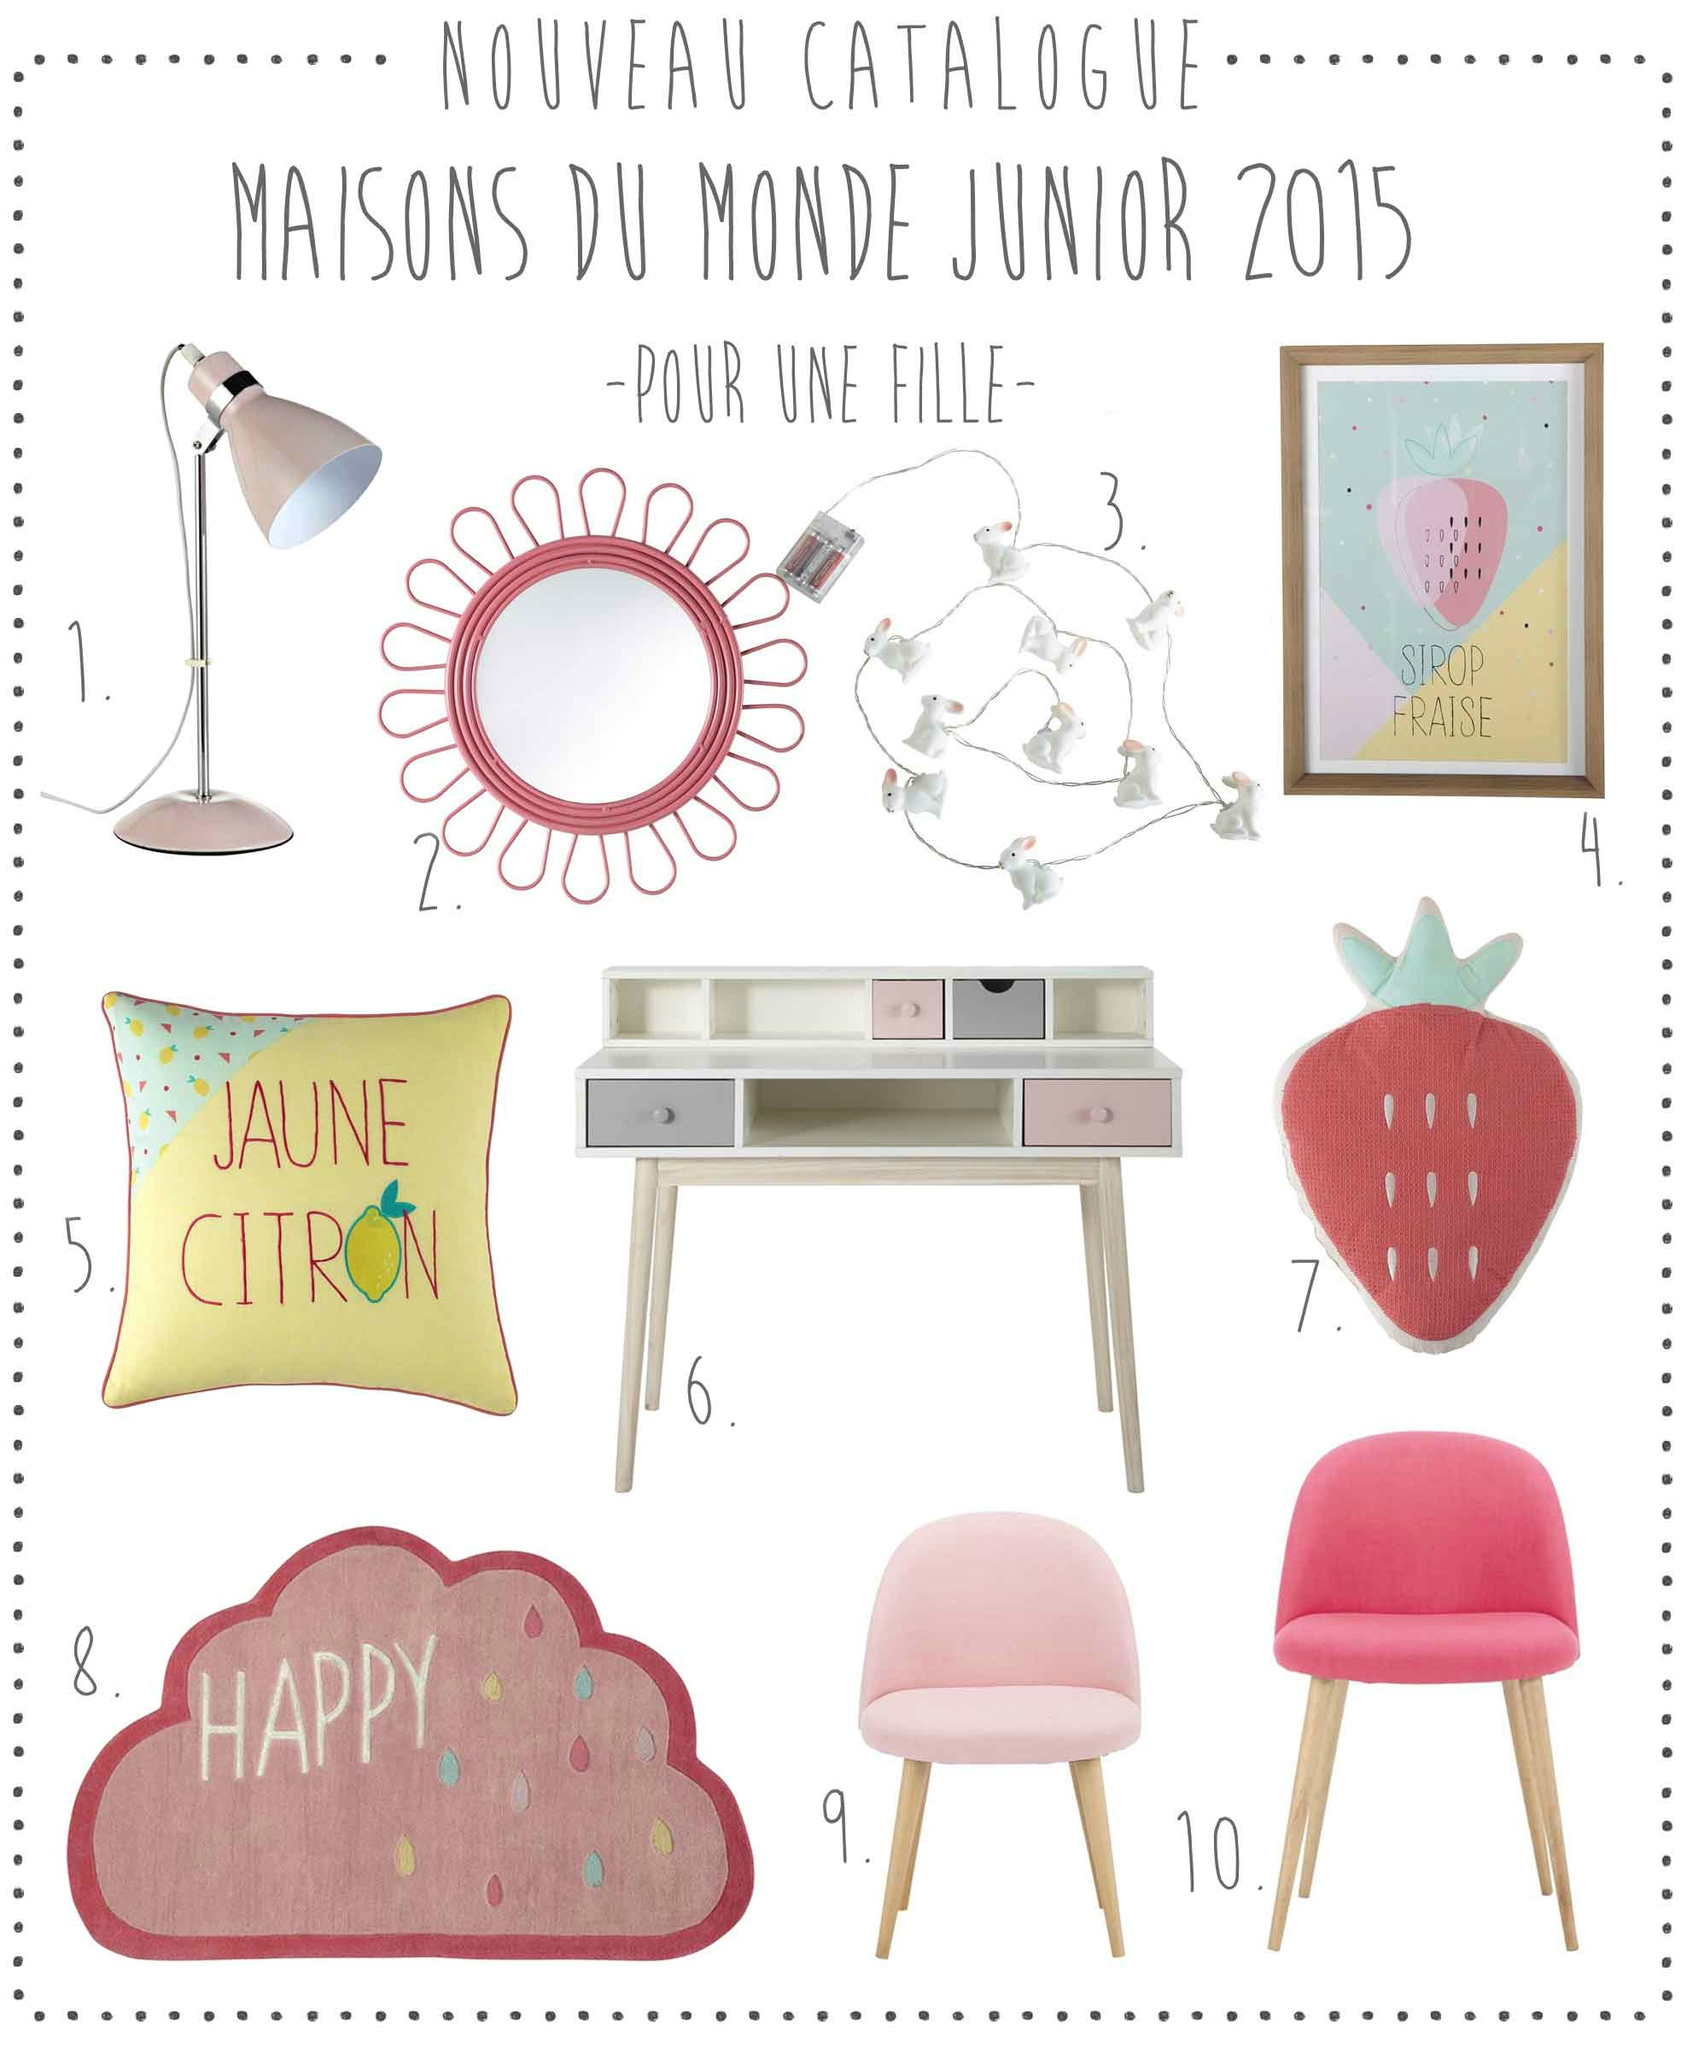 Nouveau le catalogue junior maisons du monde 2015 for Nouveau catalogue maison du monde